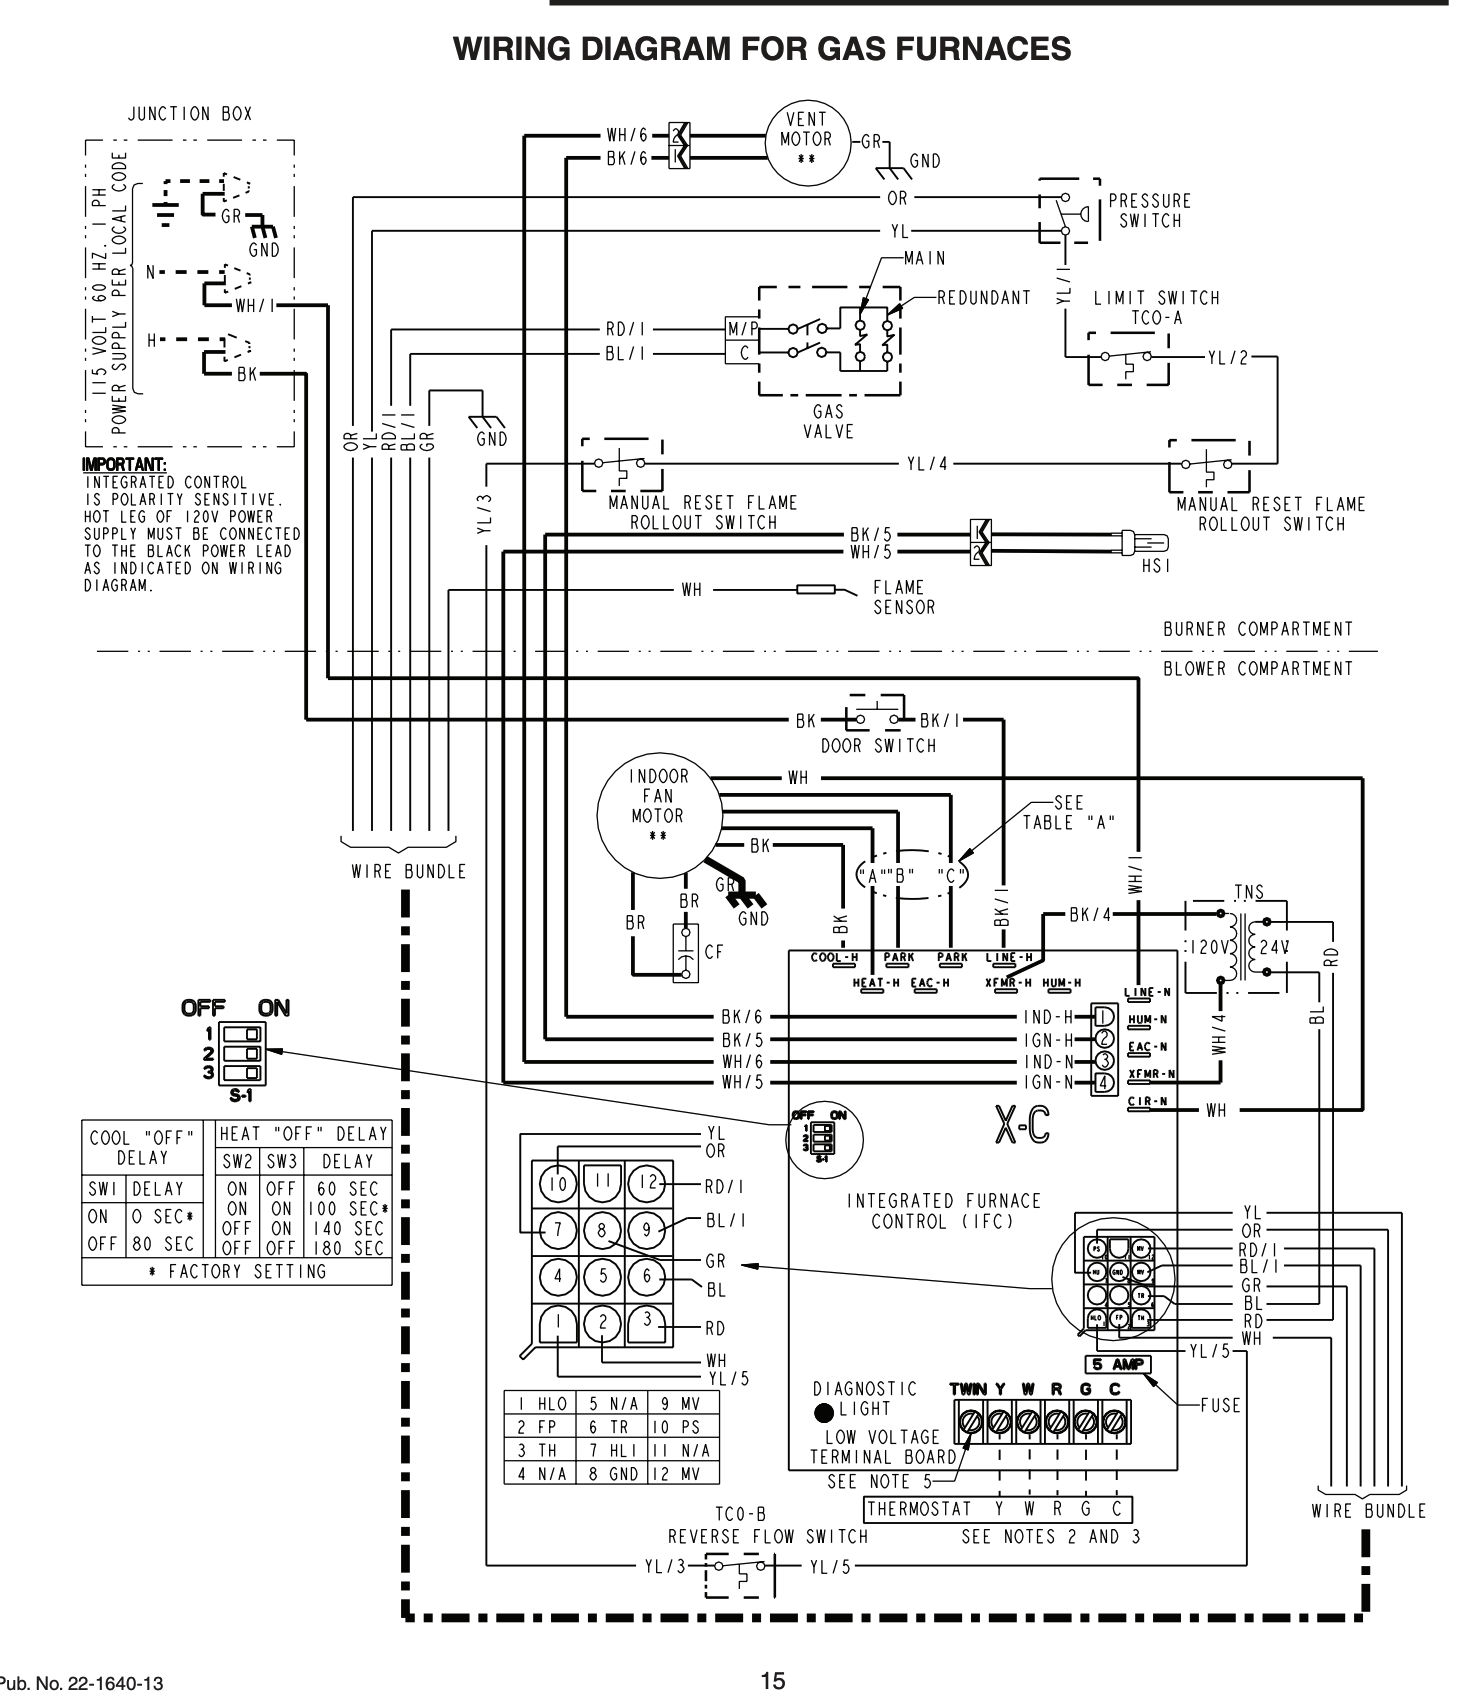 American Standard Wiring Diagrams | Wiring Diagram on american standard transformer, american srandard thermostat wiring diagram, american standard thermostat cover, american standard thermostat acont802as32daa, american standard water heater thermostat, american standard thermostat reset, american standard thermostat battery, american standard blower relay, american standard thermostat manuals, american standard thermostat installation, american standard thermostat parts, american standard thermostat programming, american standard thermostat control, american standard heat pump thermostat, american standard thermocouple, american standard heating, american standard programmable thermostat,